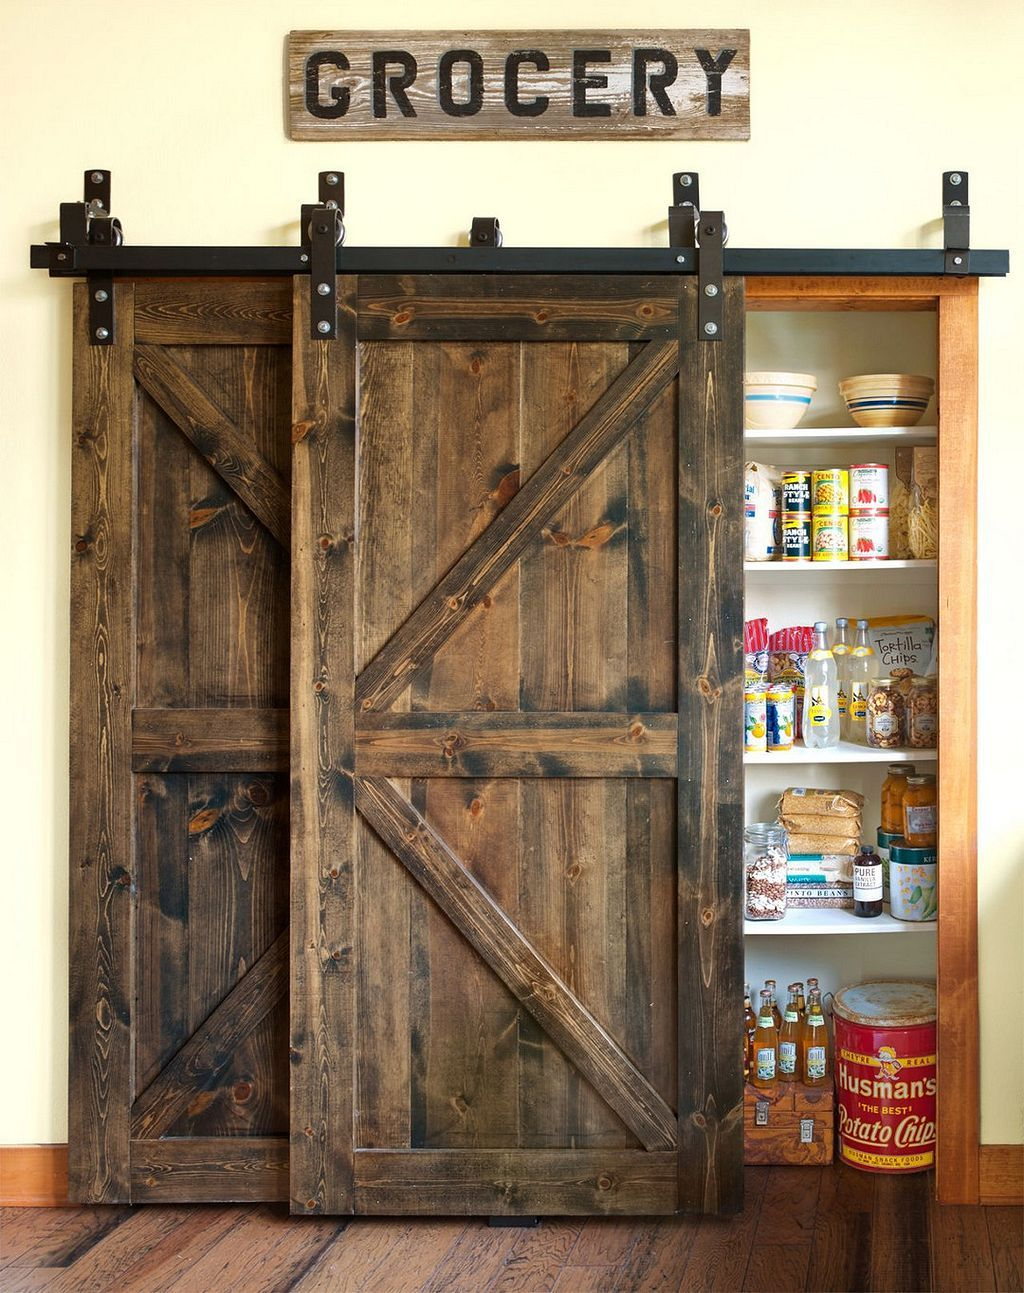 Amazing 30 Farmhouse Kitchen Ideas On A Budget 2018 Https Kidmagz Com 30 Farmhouse Kitchen Ideas On A Budget 2018 Trendy Home Decor Rustic House New Homes